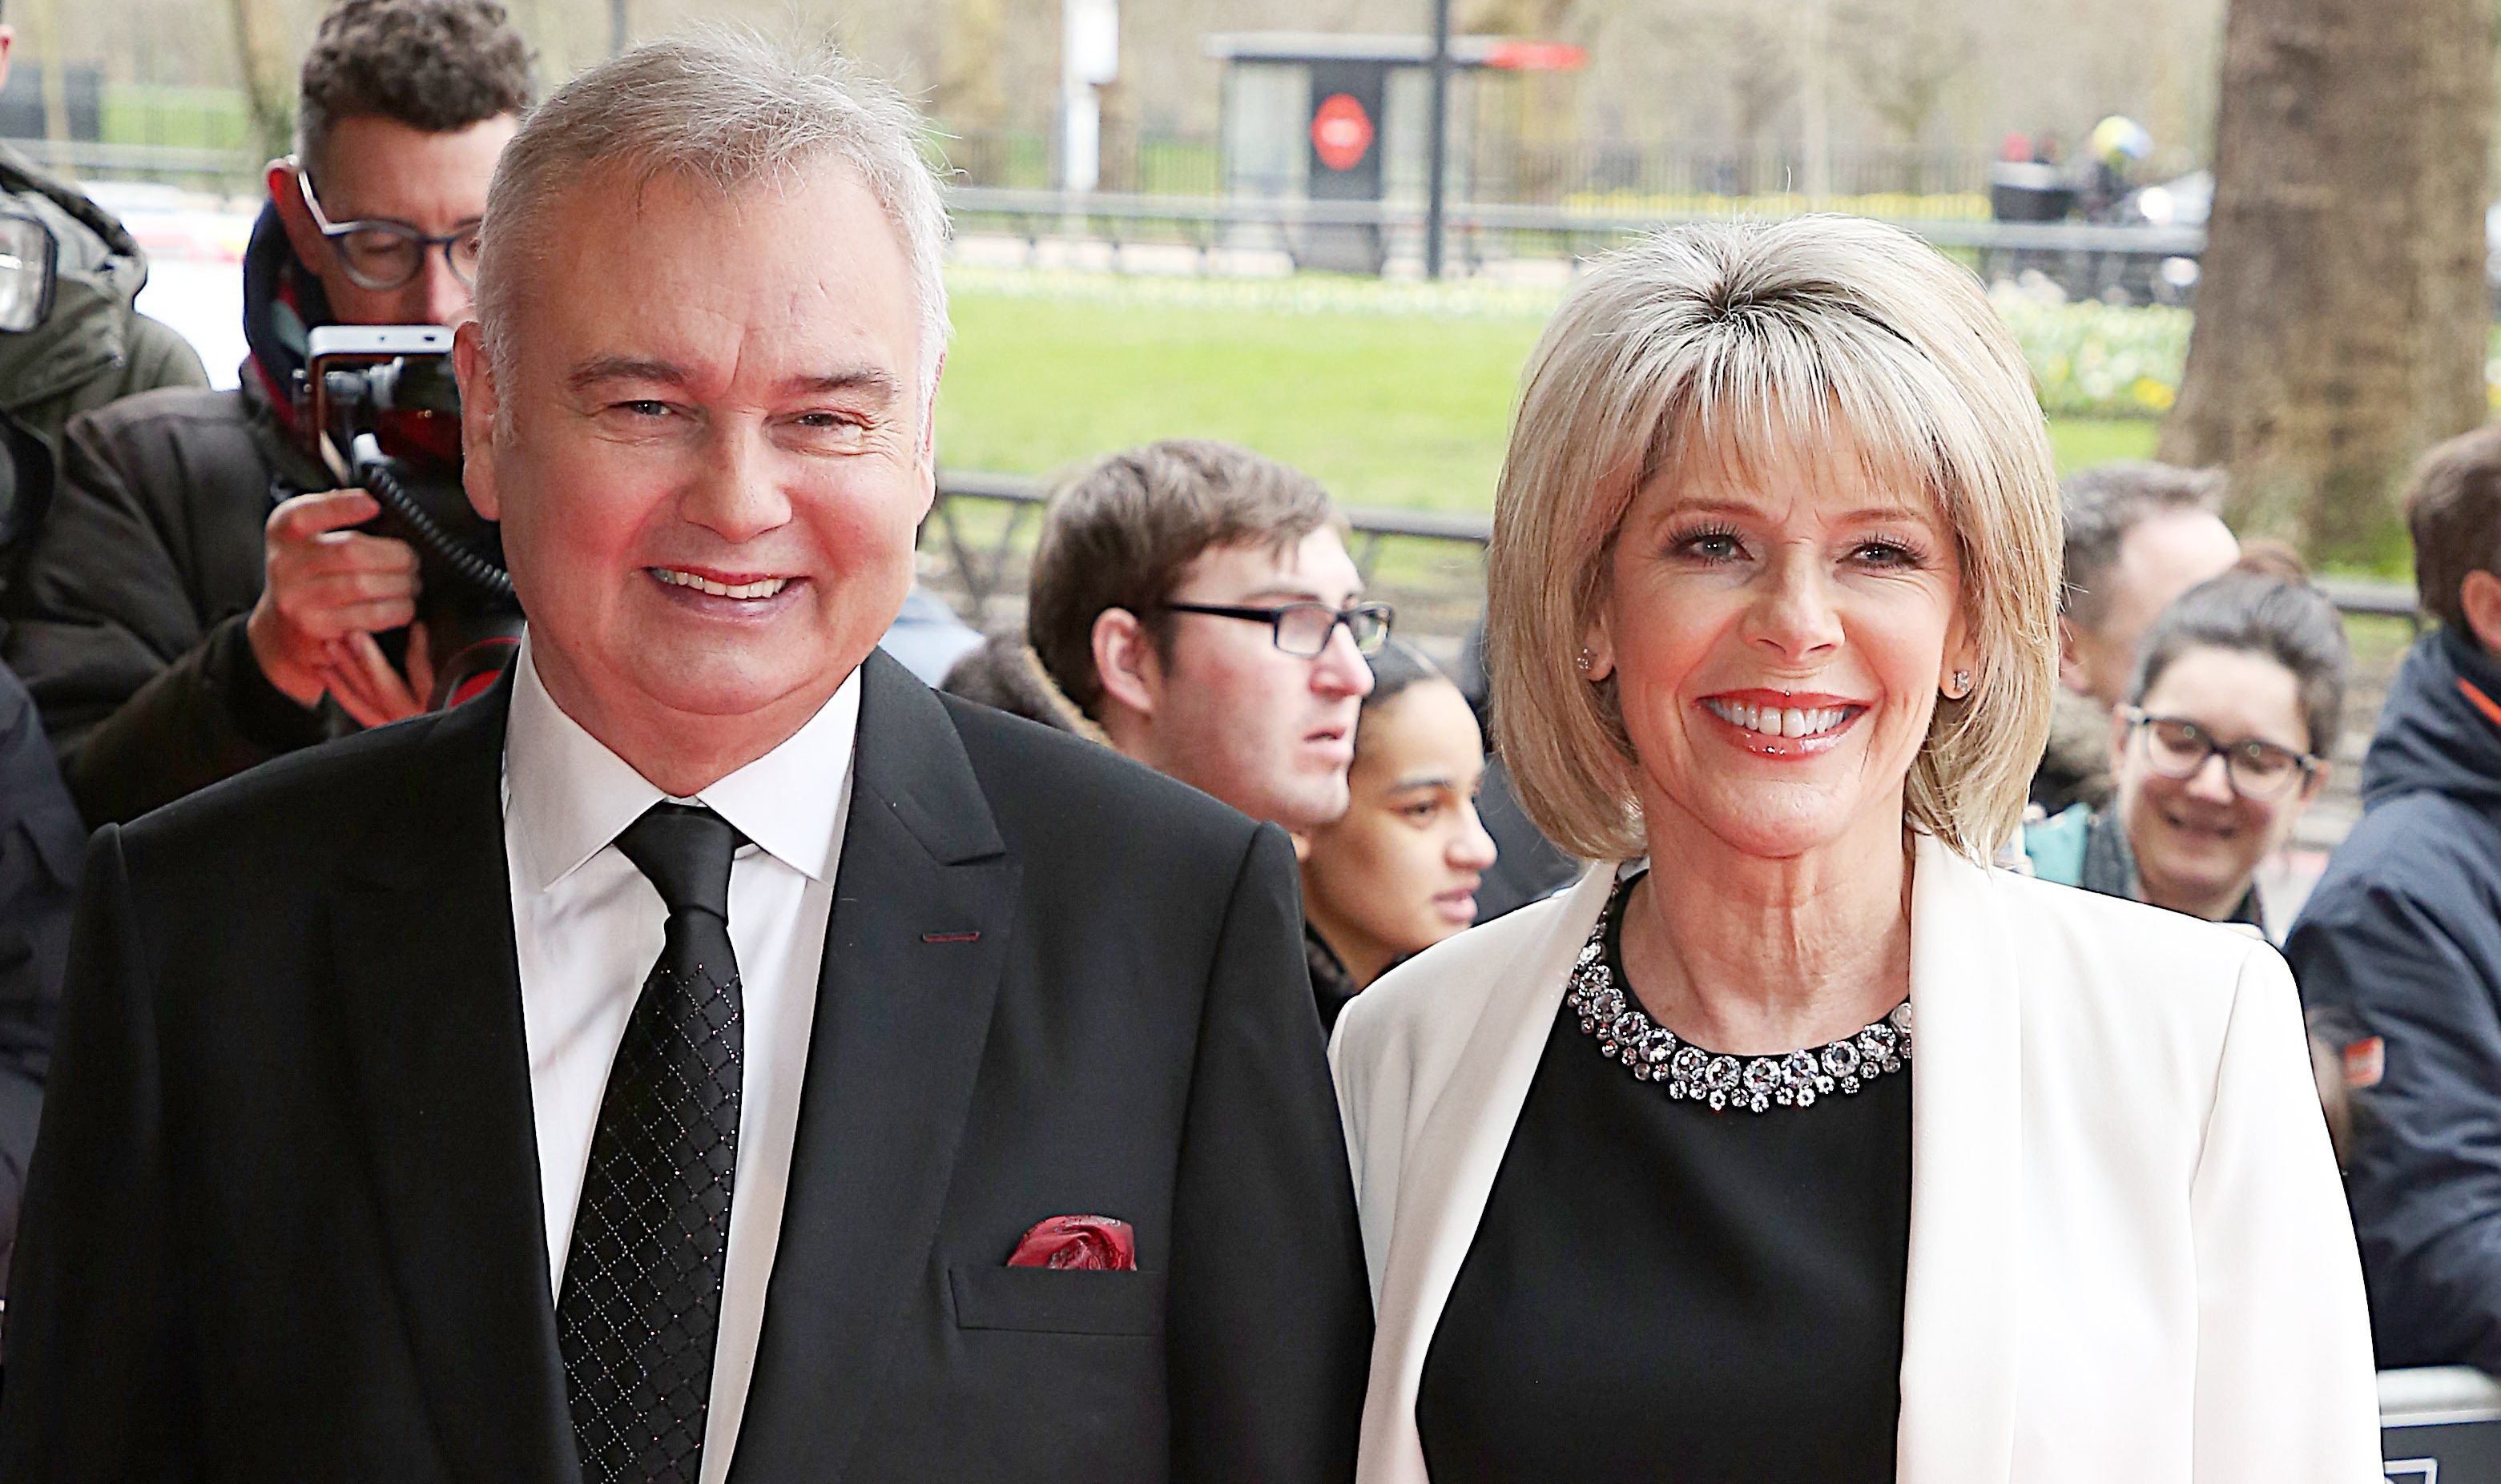 Craig Revel Horwood reveals Eamonn Holmes' insult to wife Ruth Langsford